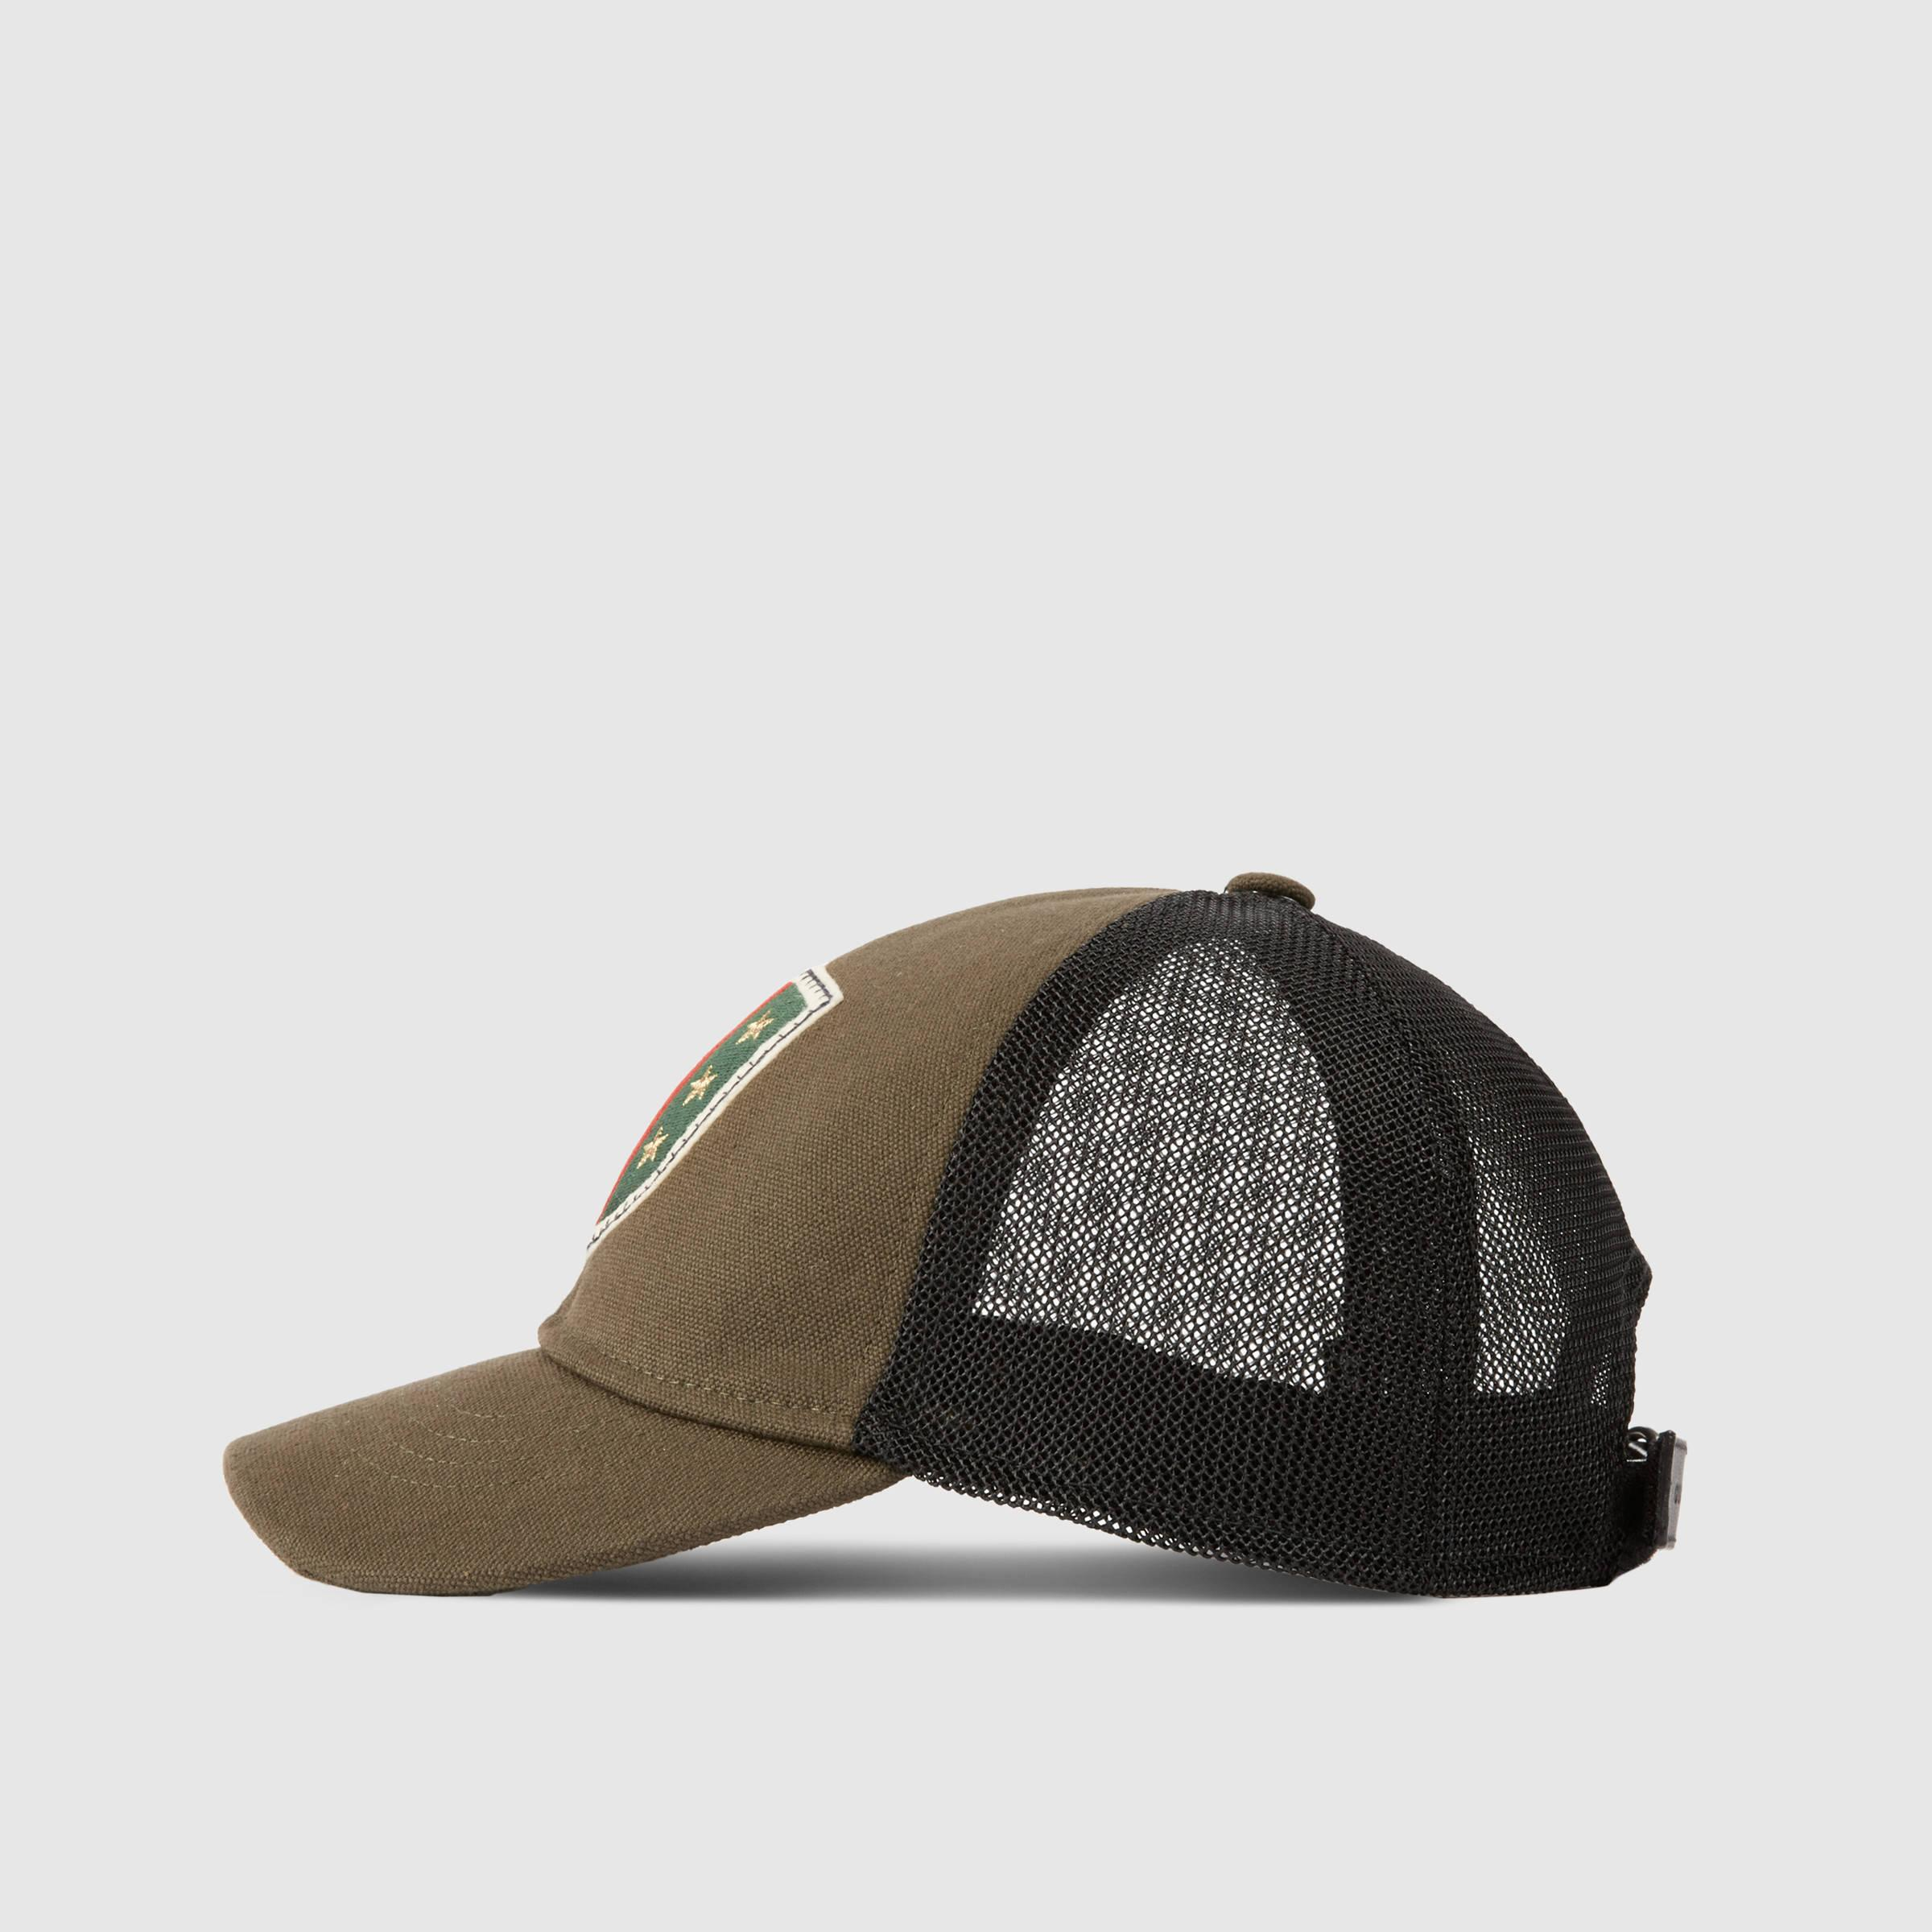 Gucci Hats For Men: Gucci Canvas Hat With Web Crest And Stars In Green